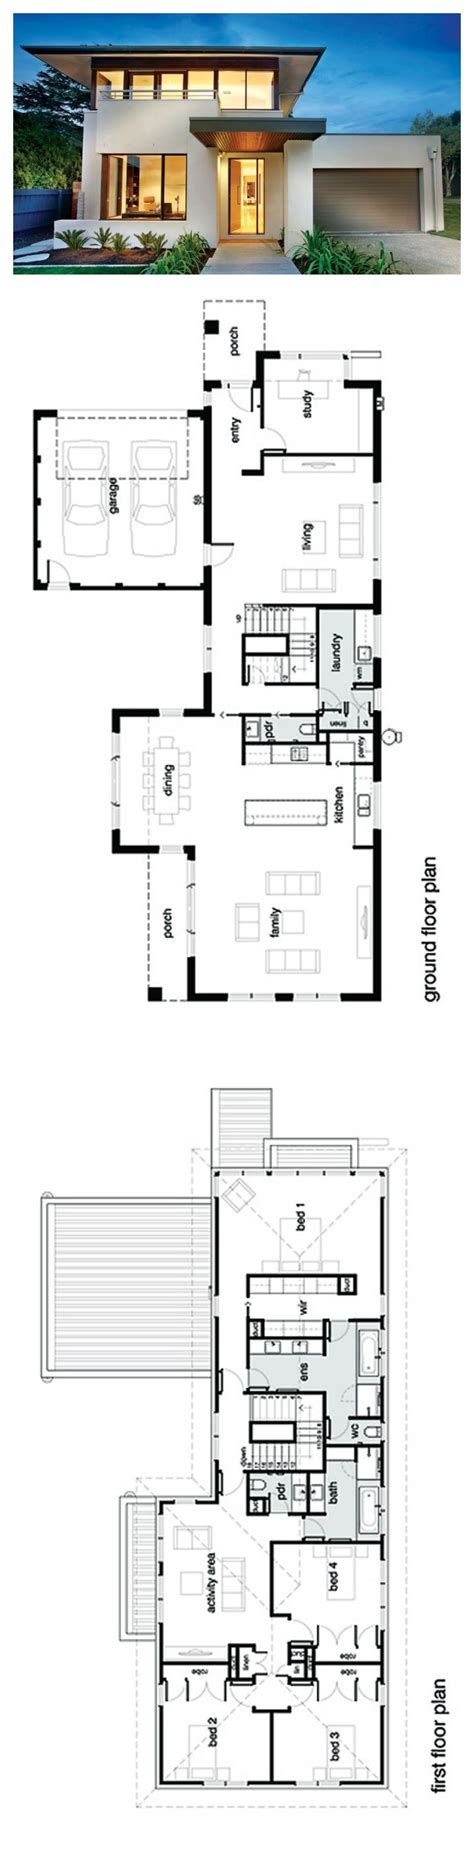 modern floor plans the 25 best ideas about modern house plans on pinterest